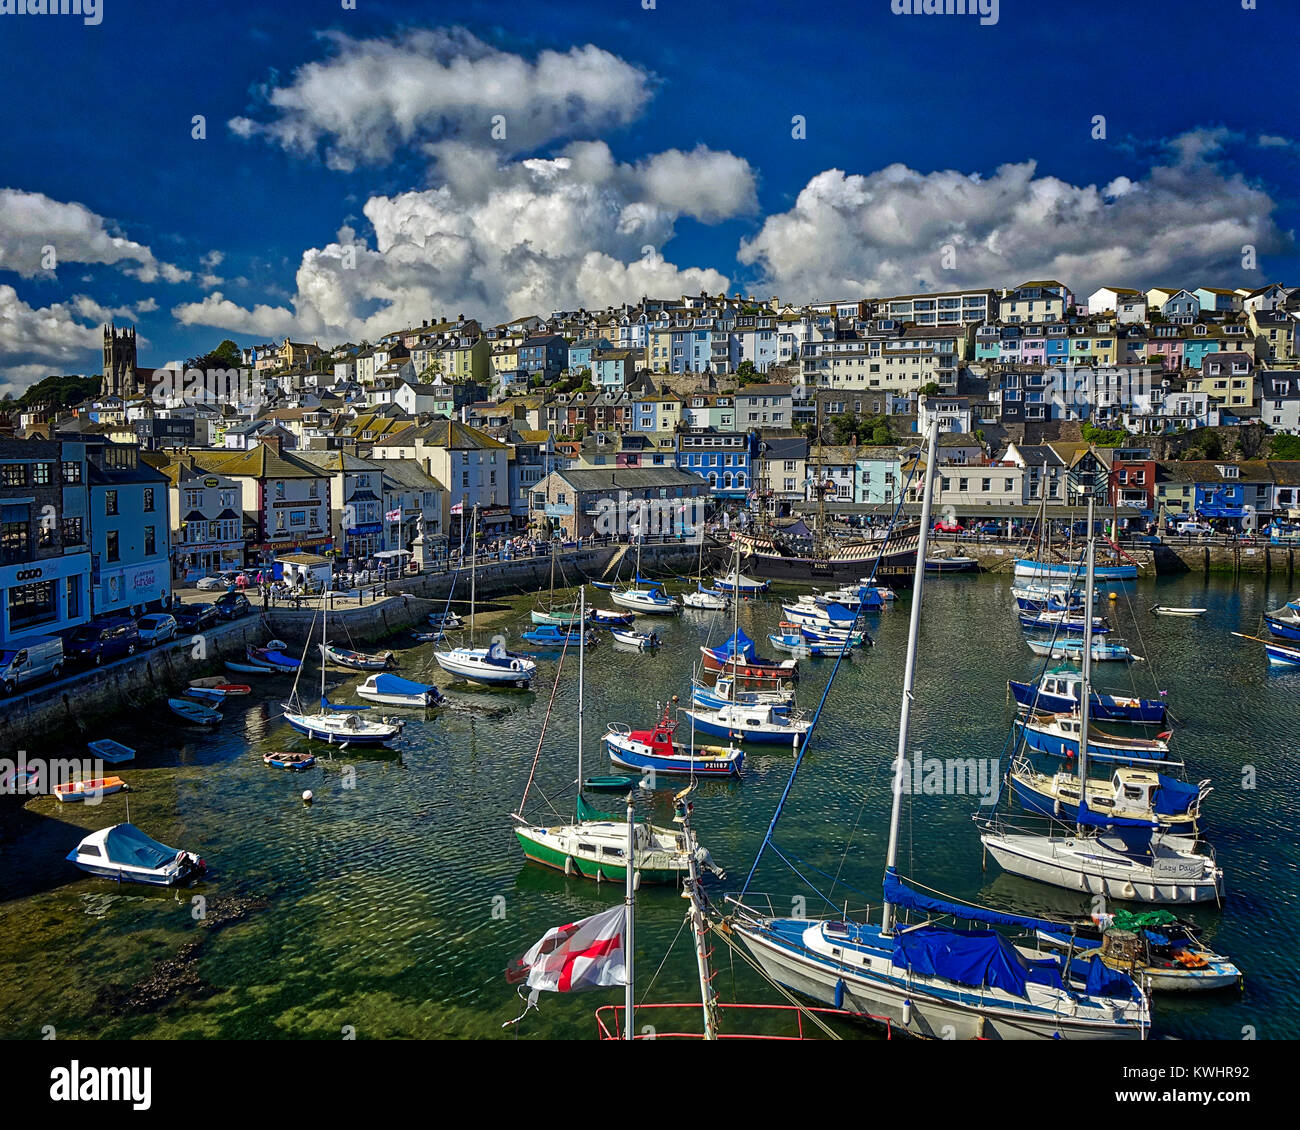 Go - DEVON : Brixham Harbour (image HDR) Photo Stock